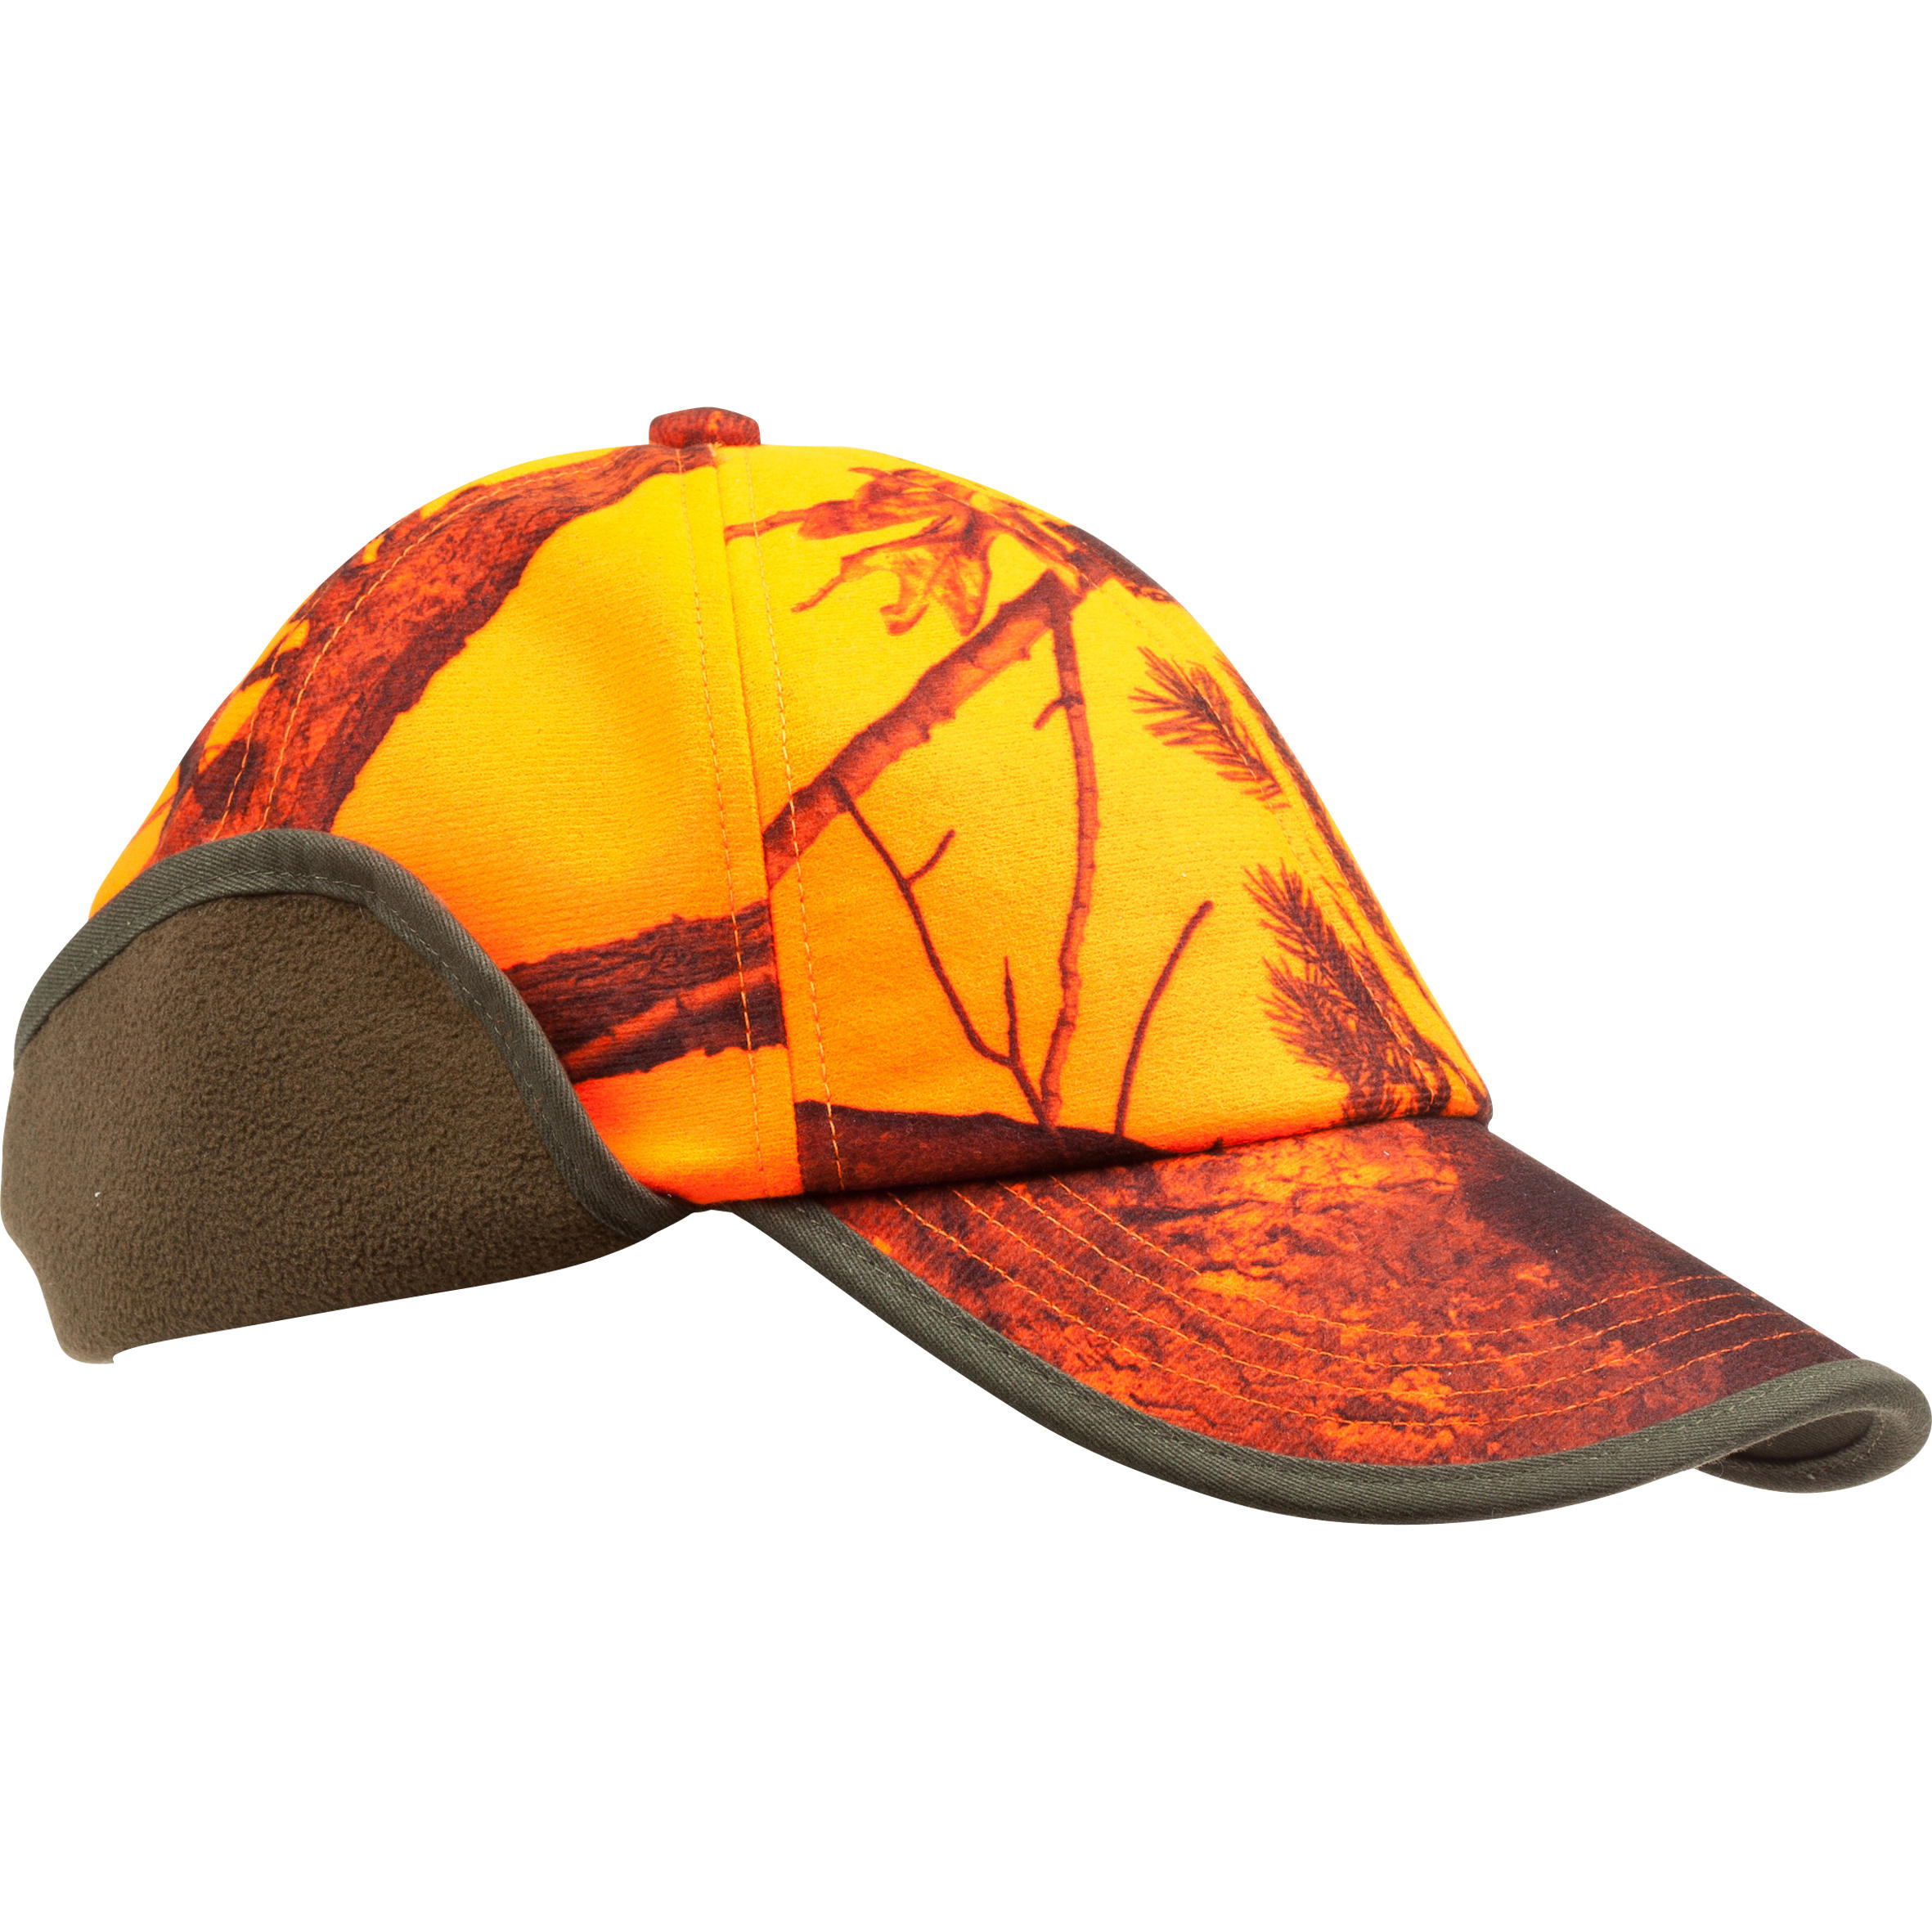 CAMOUFLAGE HUNTING CAP WITH EAR FLAPS - ORANGE